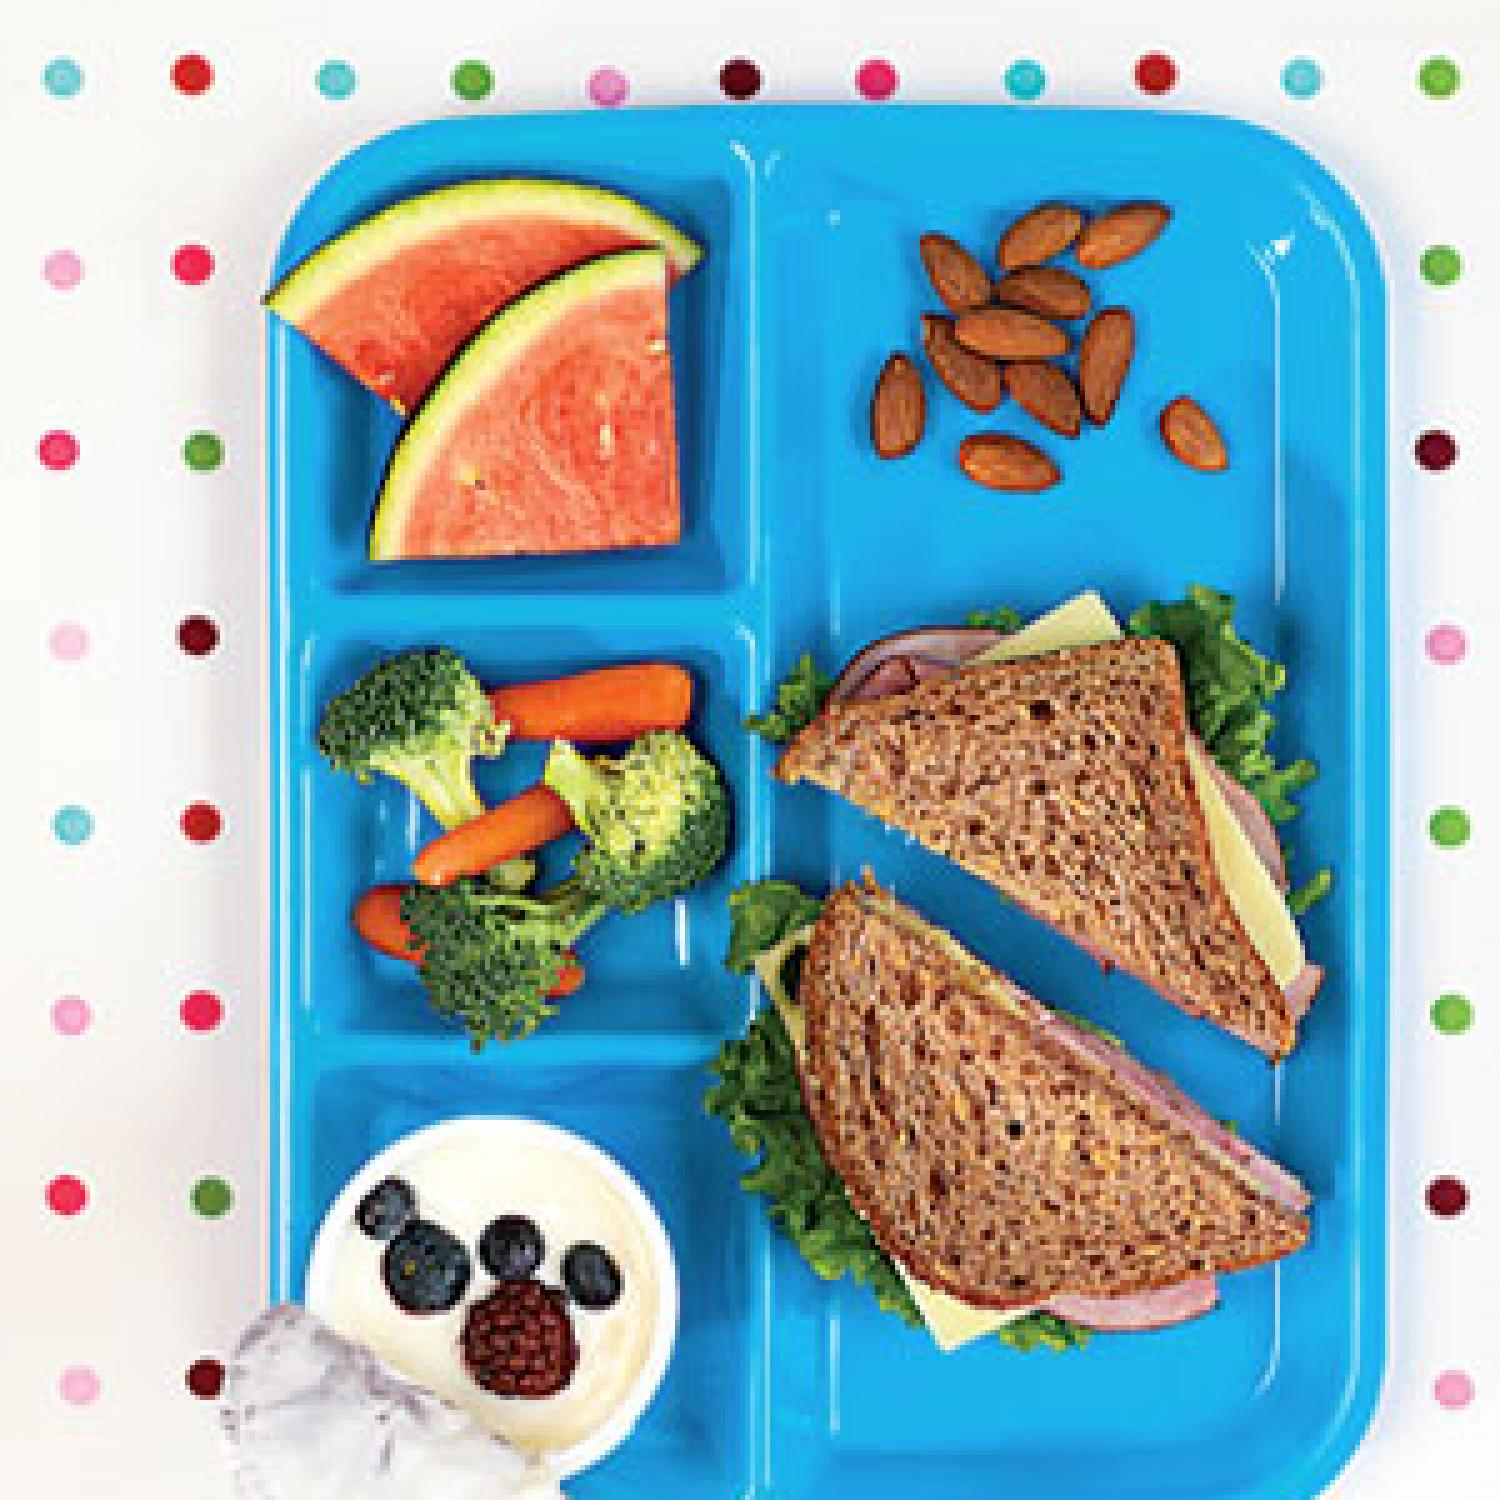 kid-friendly lunch ideas | parenting